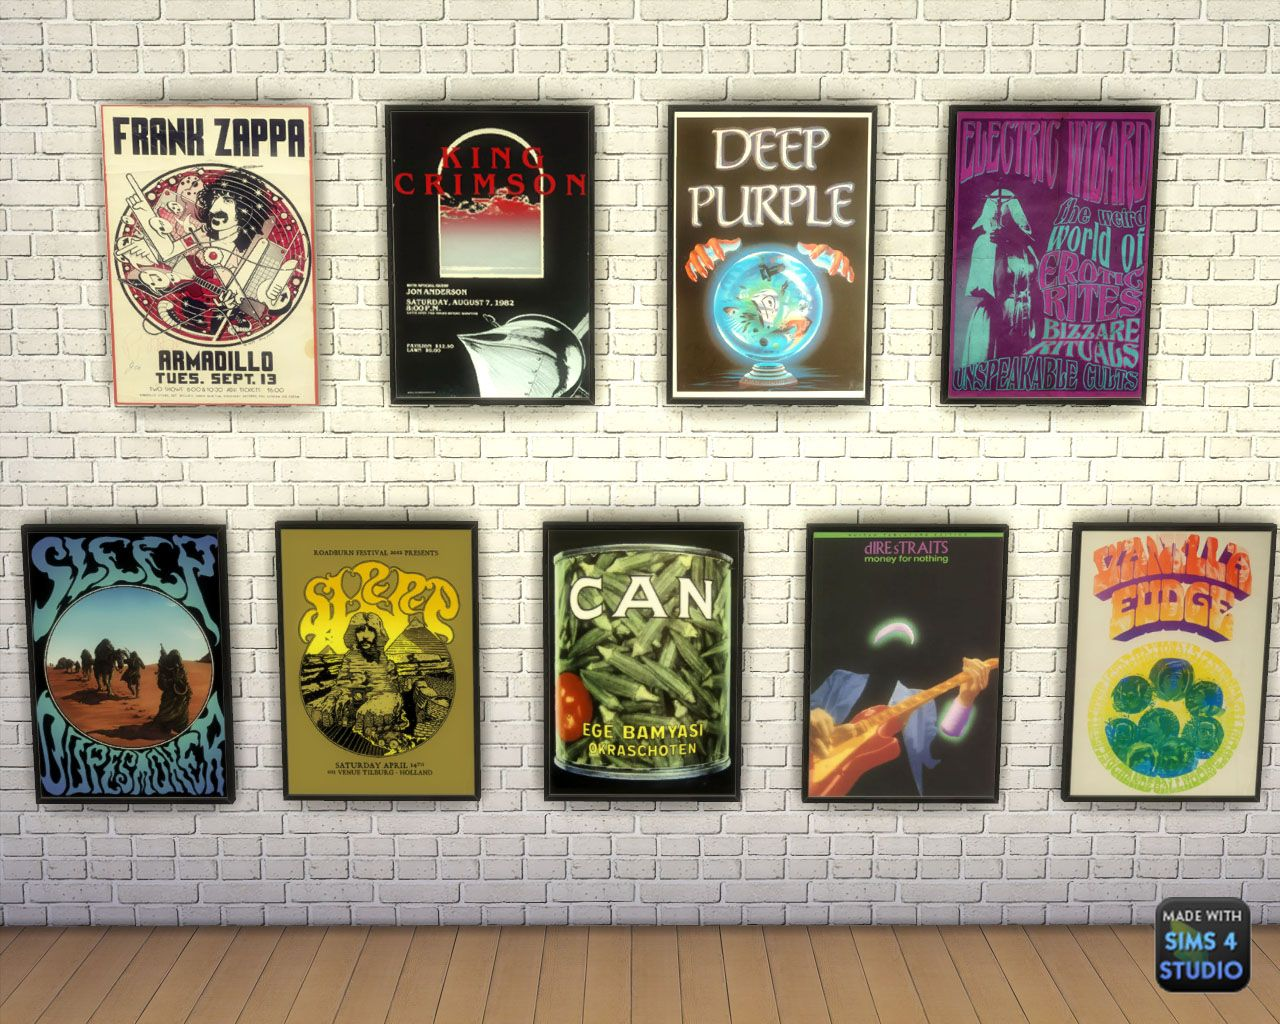 My sims 3 blog sims 3 collage wall decor by michelleab - Sims 4 Rock Posters 25 Swatches Mesh By Black S4rocker